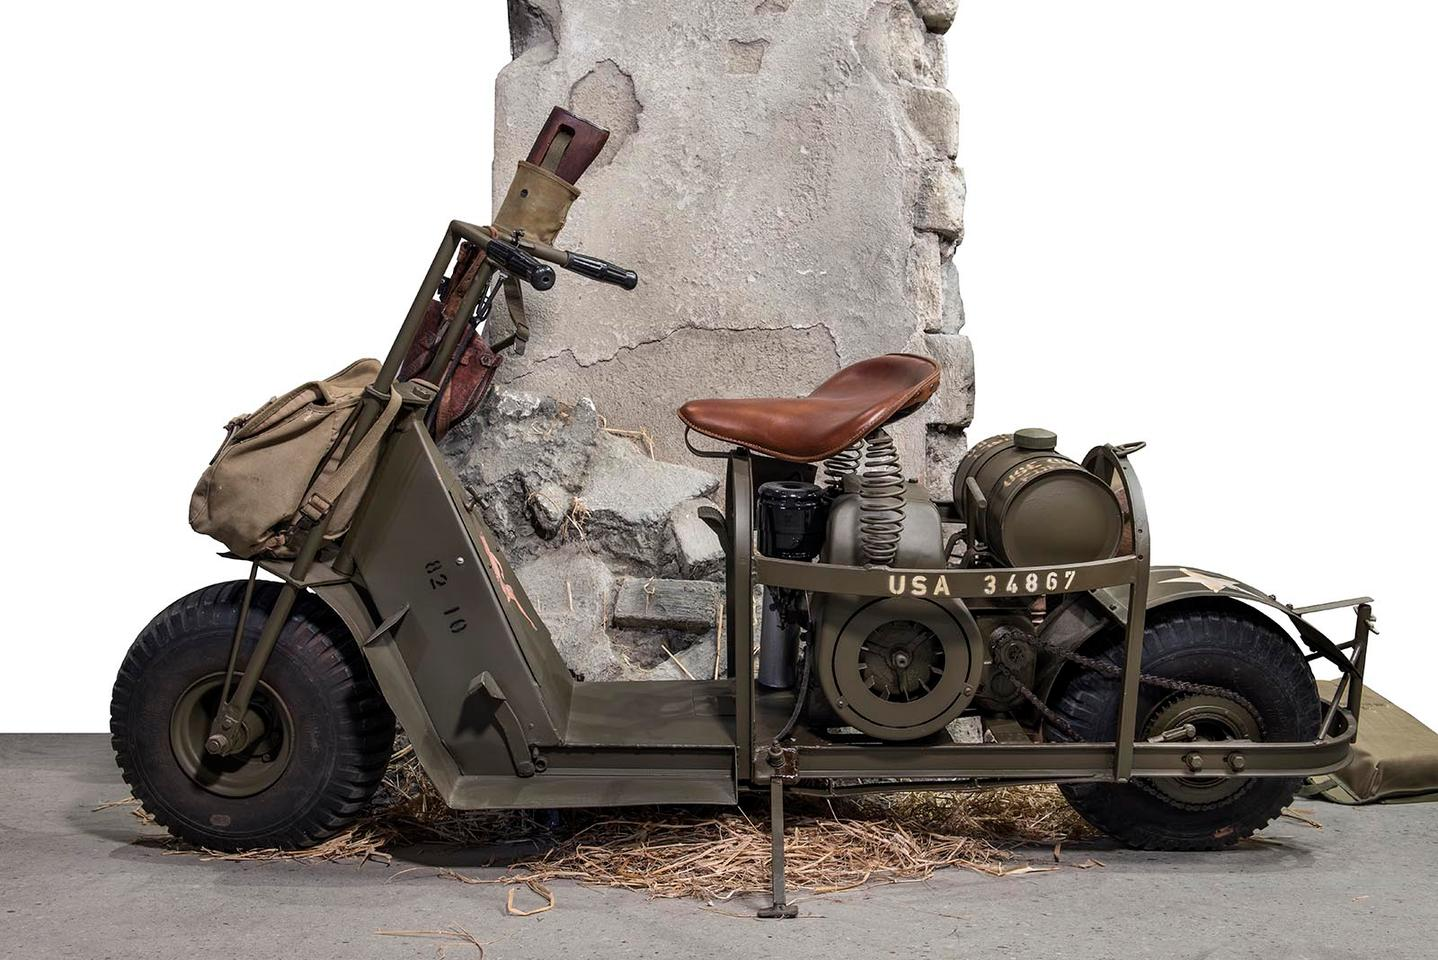 The Cushman M53-A motorcycle was specifically built to be delivered by glider or parachute behind enemy lines, and to give American marines instant 40 mph mobility and a range of 100 miles. The D-Day sale saw Artcurial set a world record price for the Cushman M53-A of EUR€142,600 (US$159,101) against a pre-sale estimate of €10, 000 to €20,000. The bike is now one of the 100 most expensive motorcycles ever sold at auction.